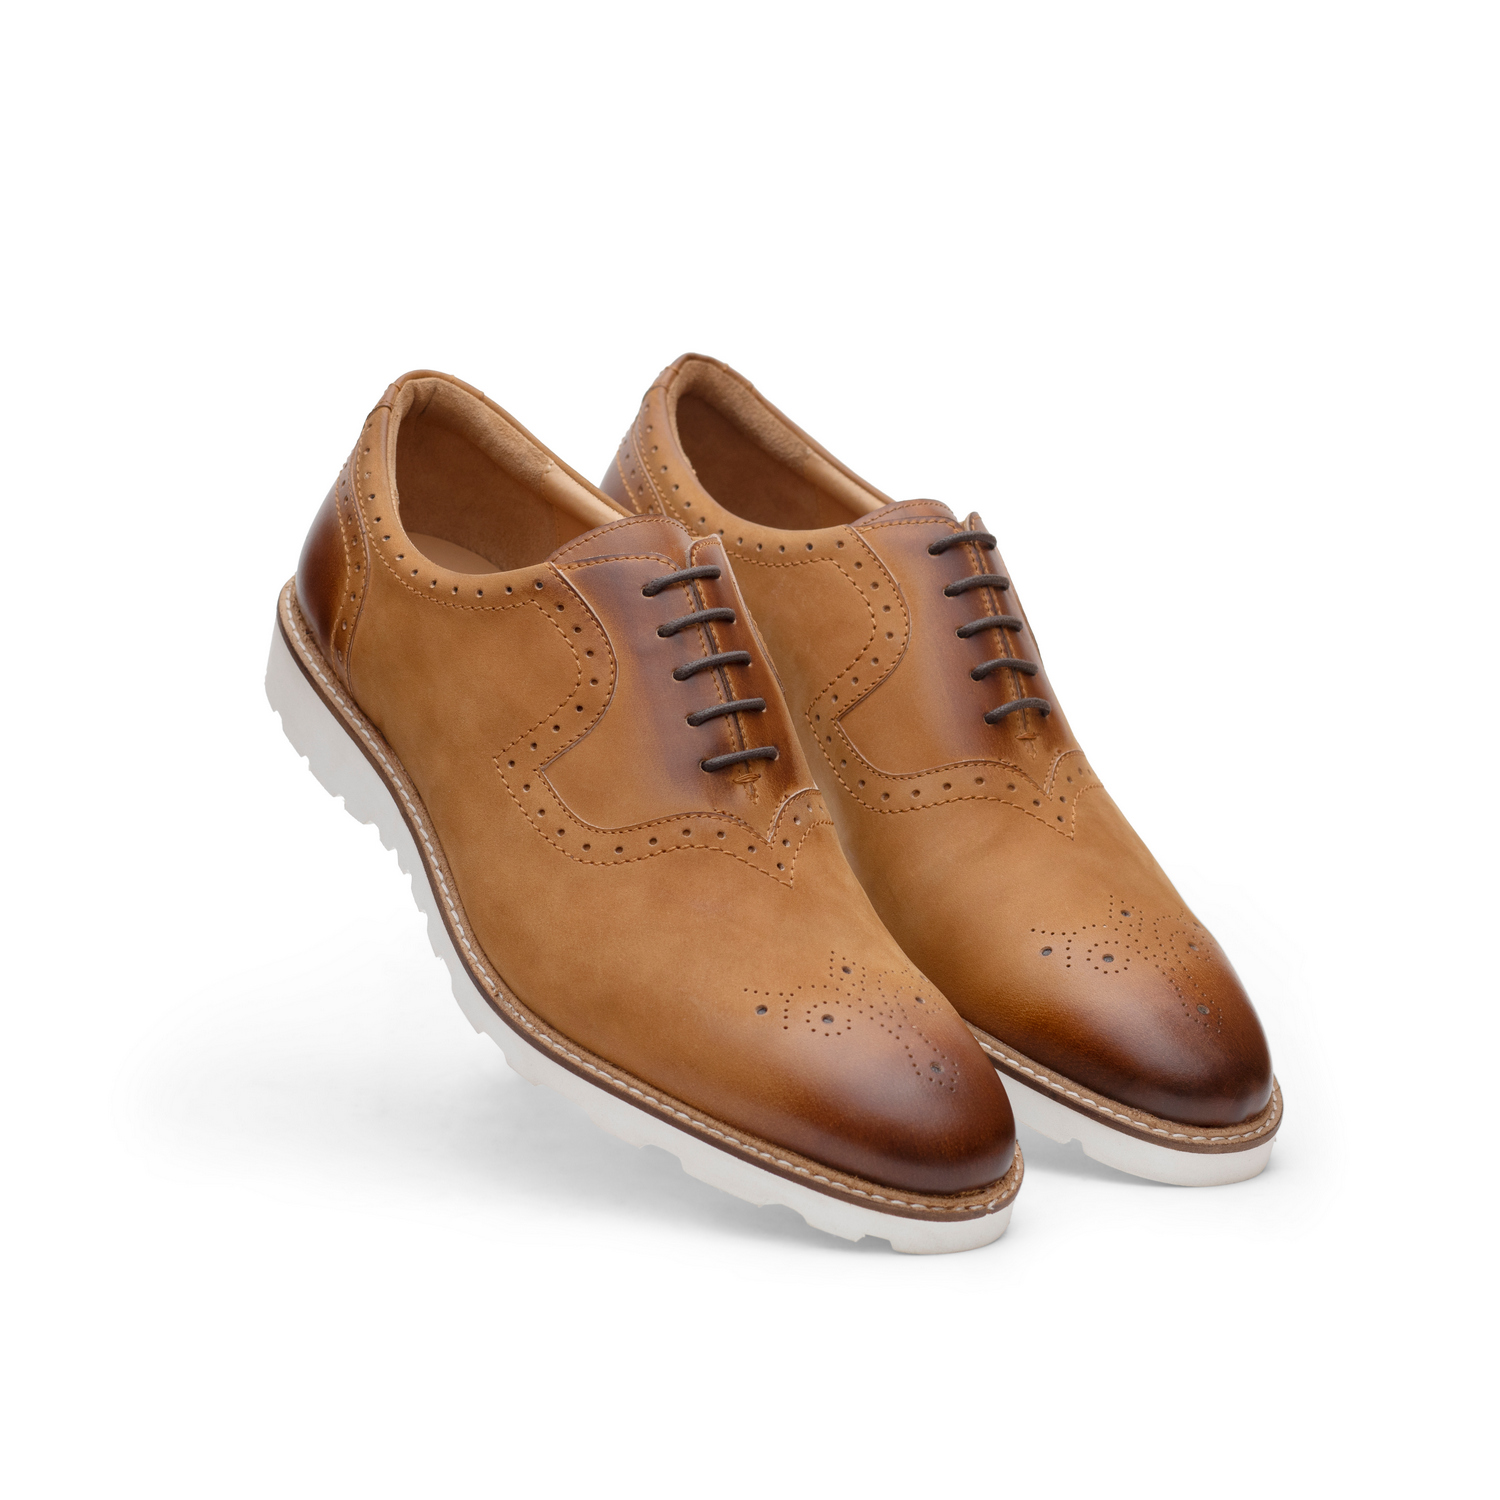 new arrivals authorized site price reduced Smart Formal Tan Shoes - MNJ Shoes - Brand New Shoes and Bags ...